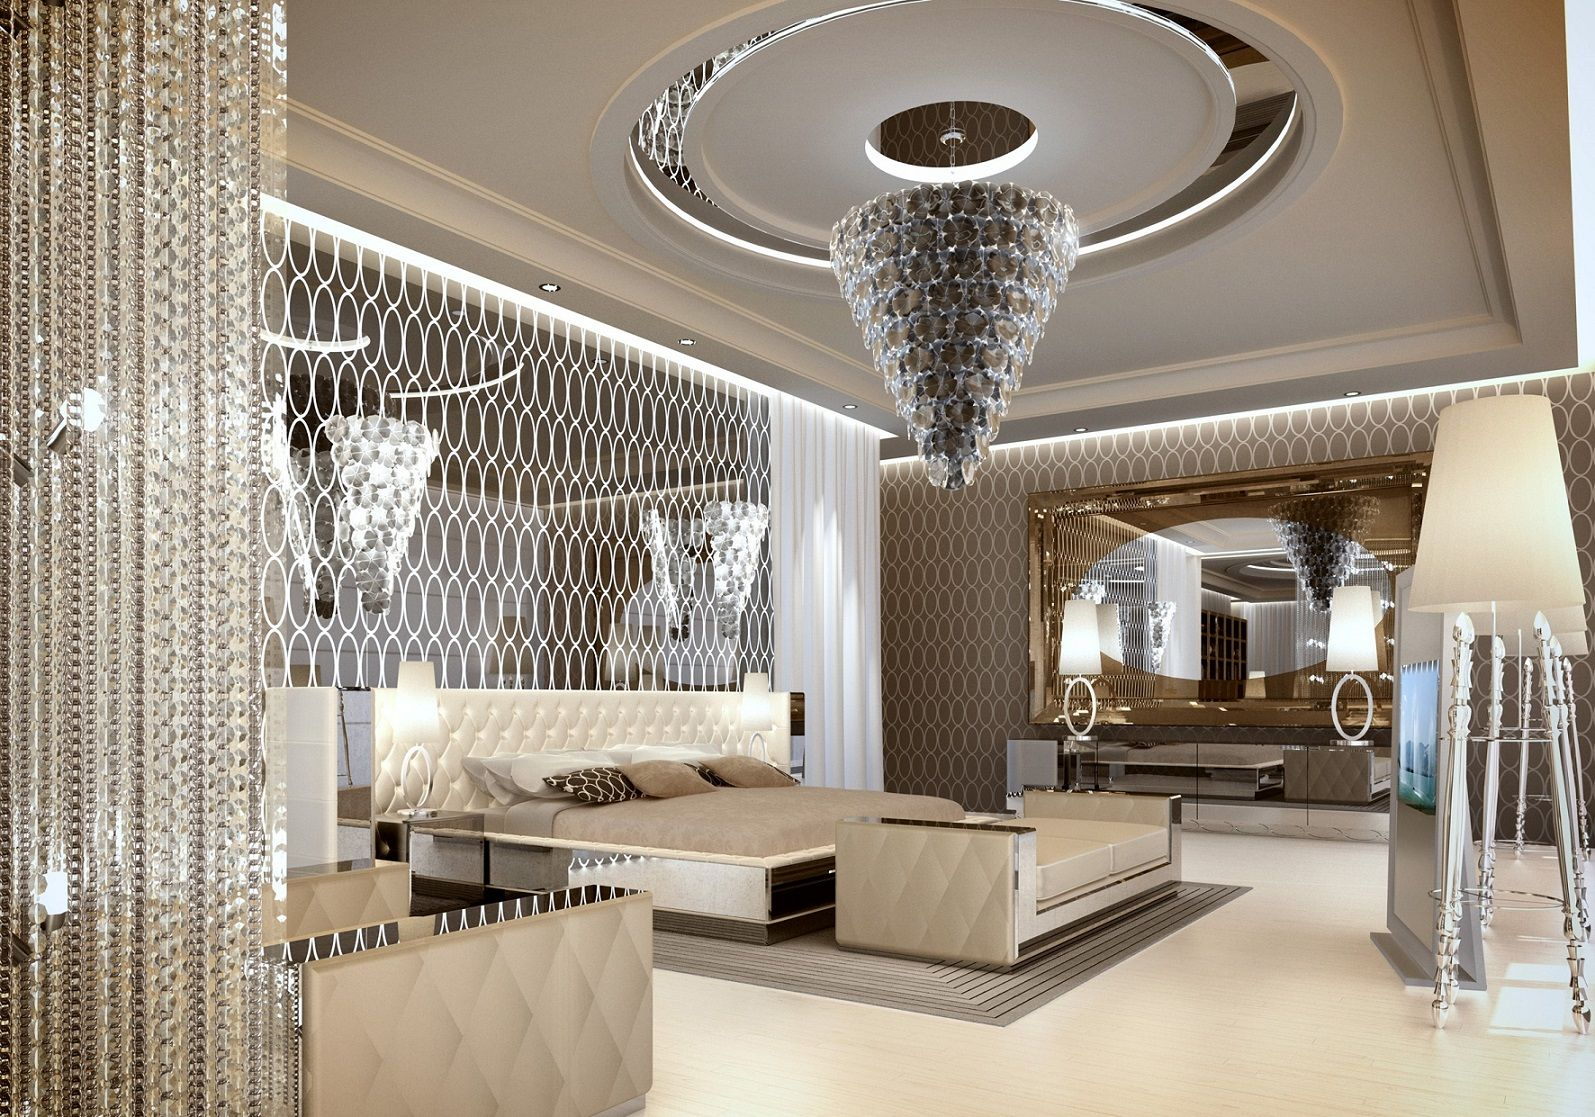 Ultra high end hotel signature collection designer for Modern luxury furniture